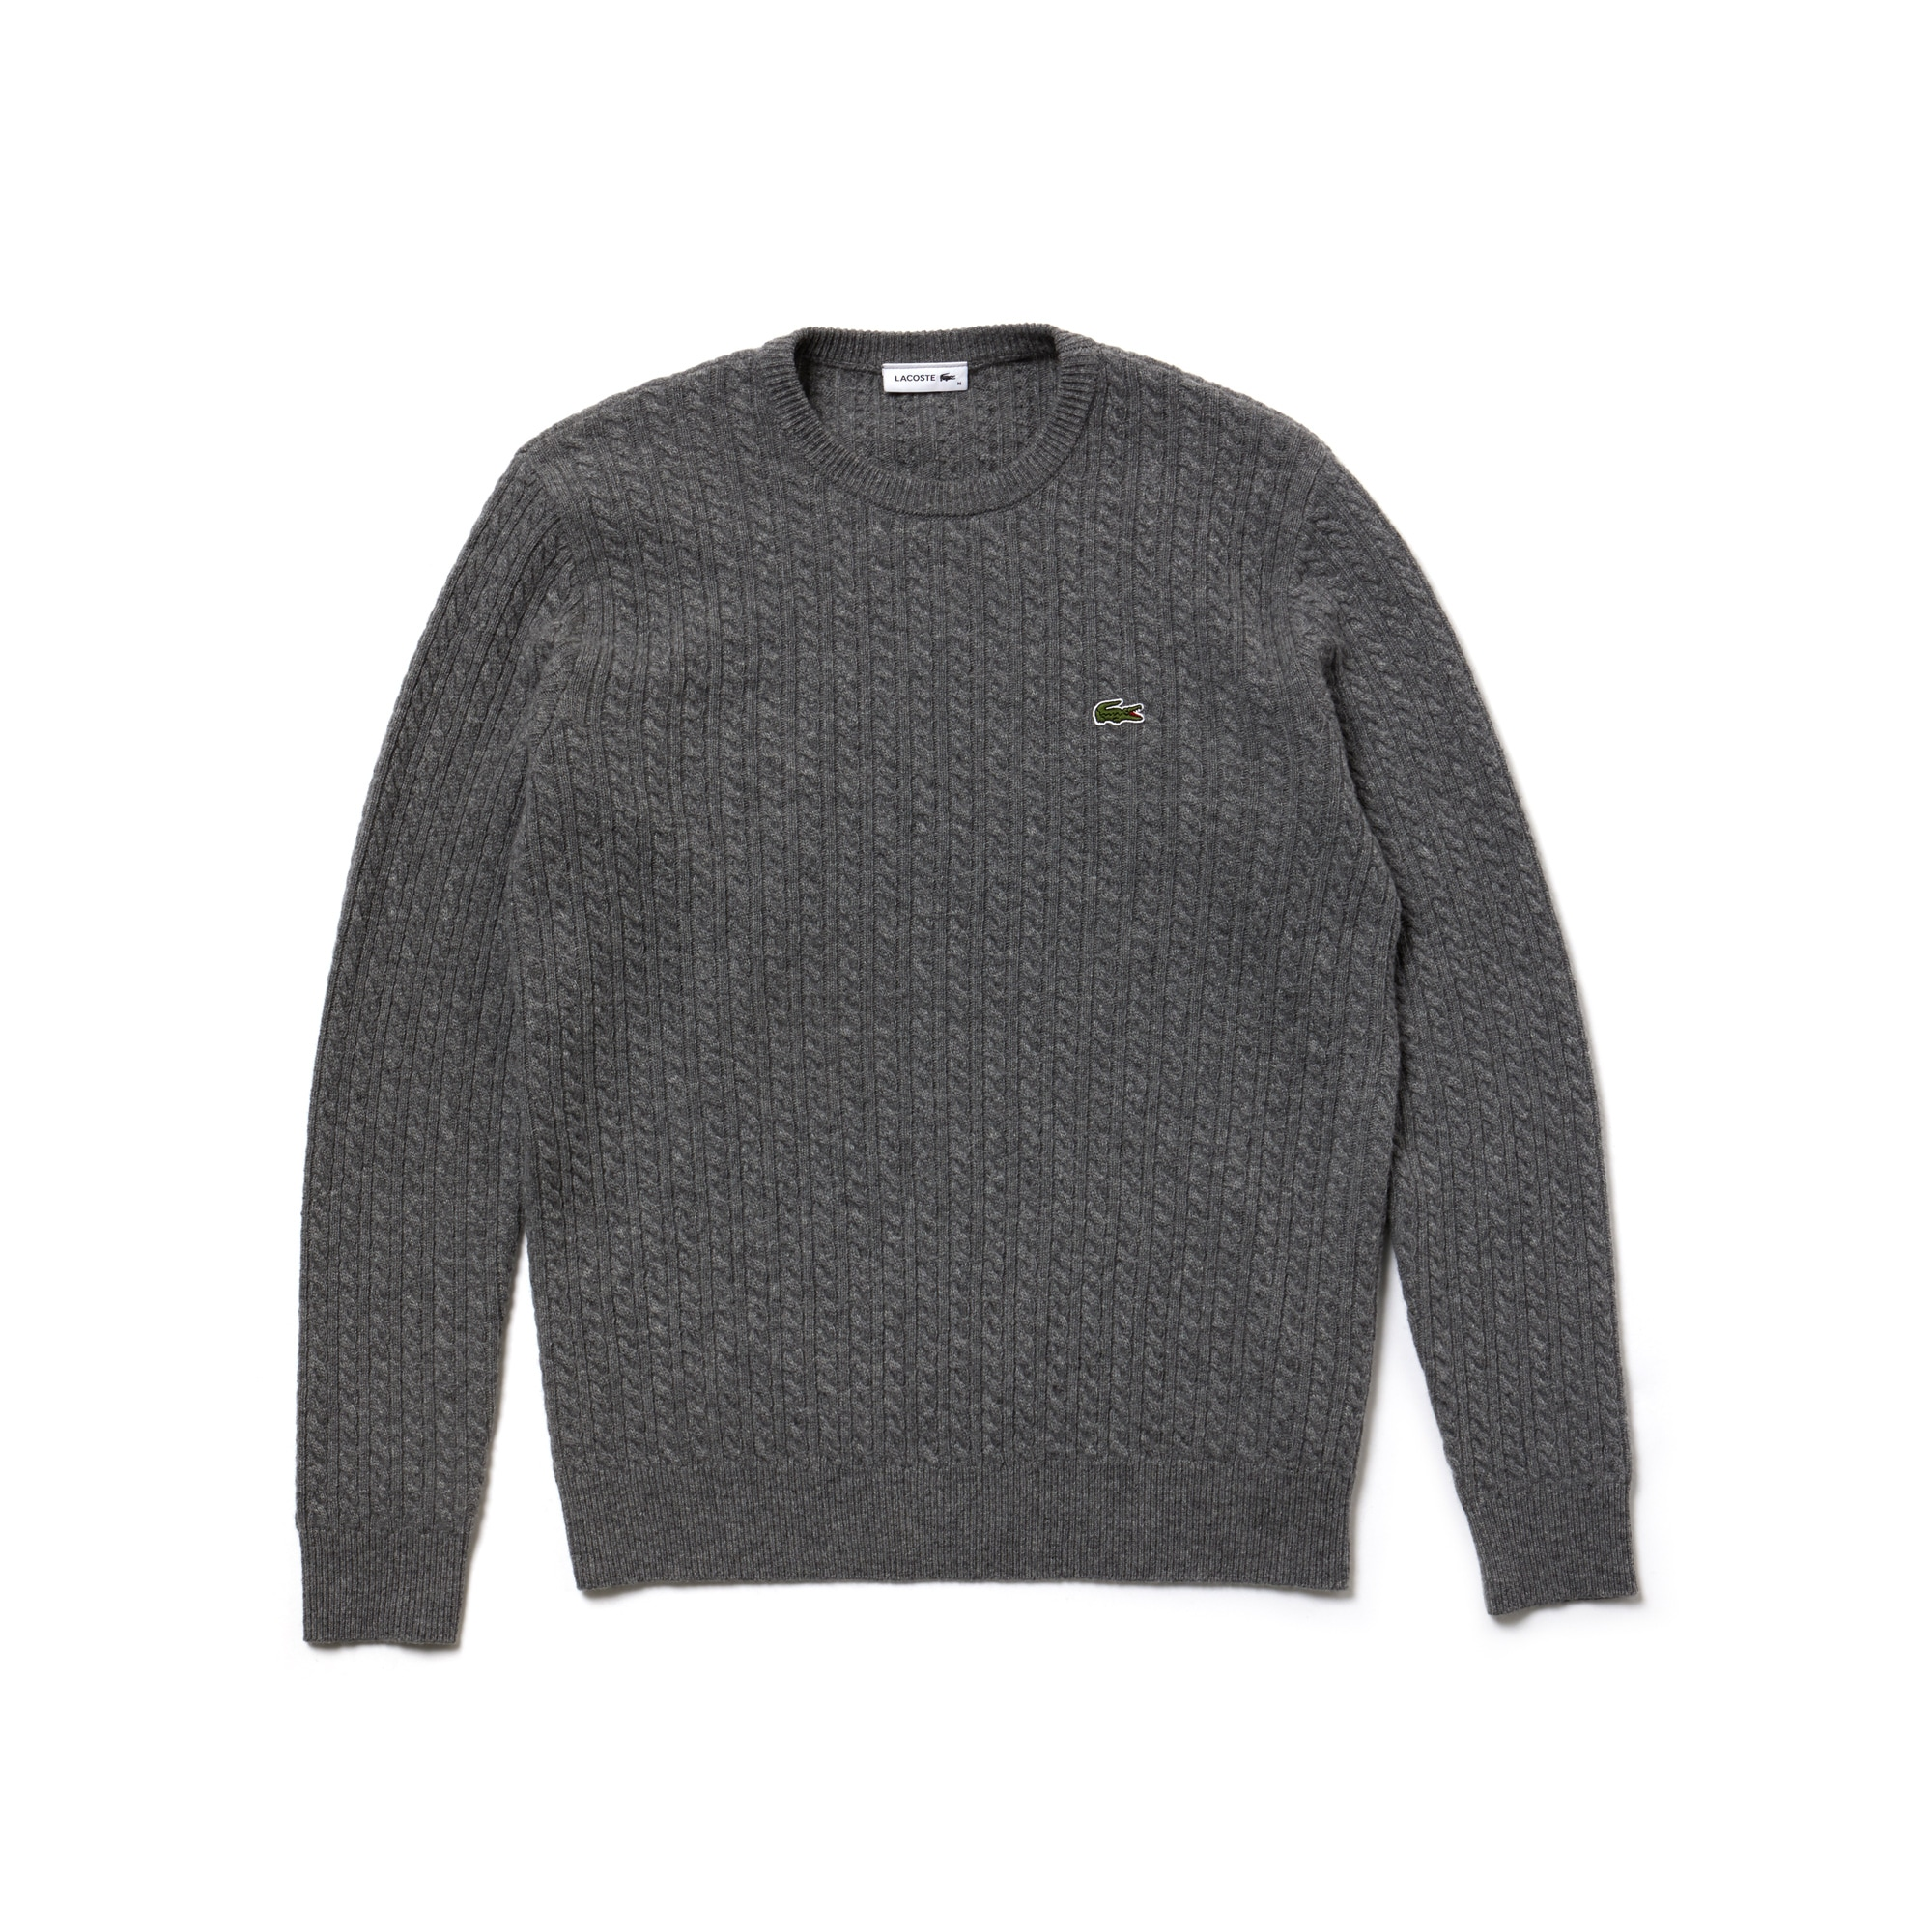 Unisex Fashion Show Crew Neck Wool And Cashmere Cable Knit Sweater